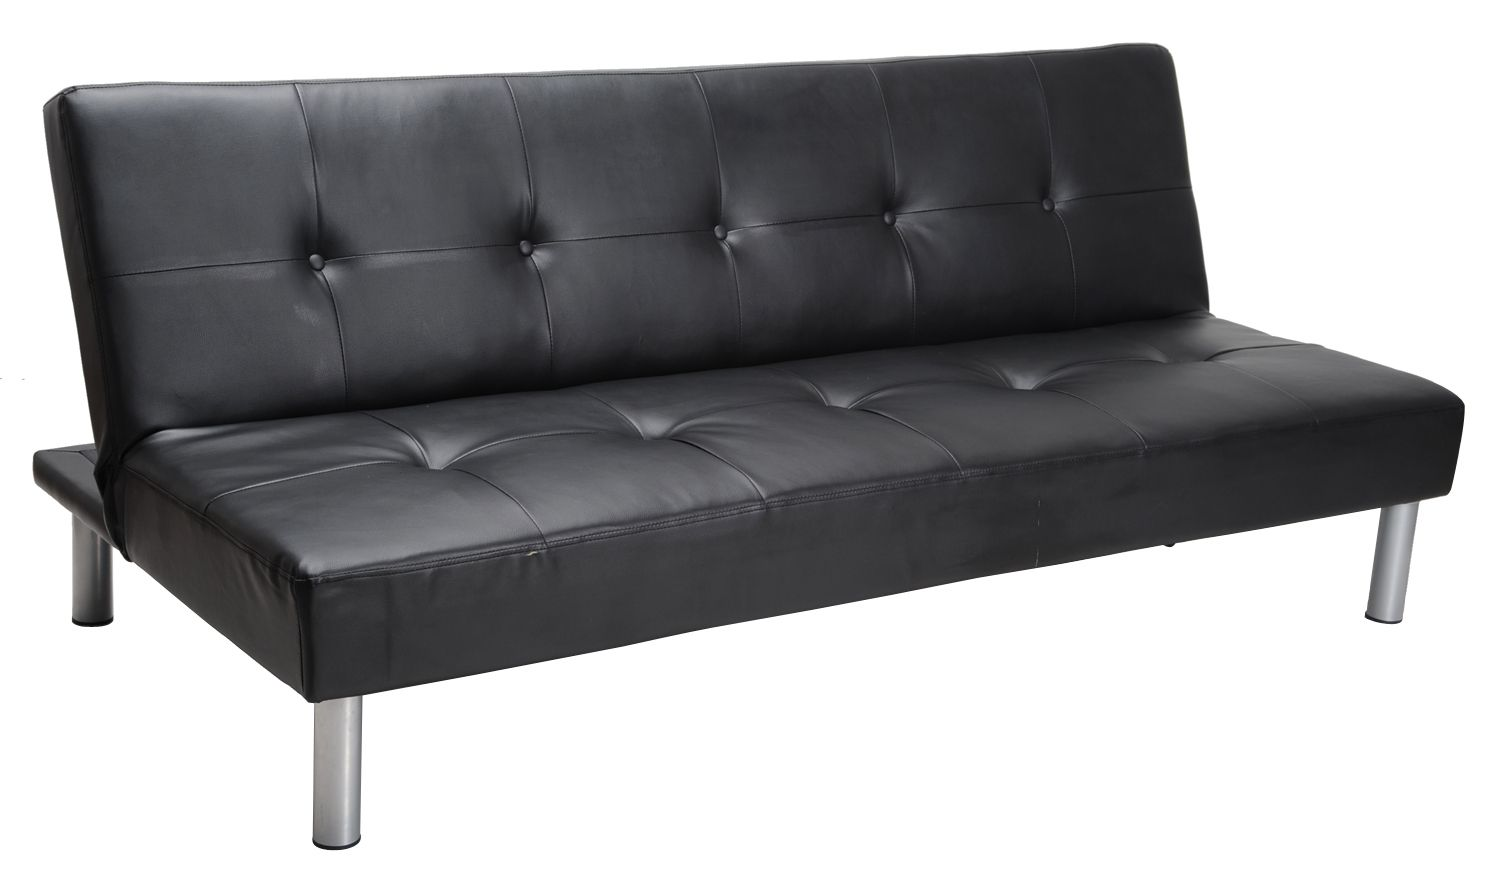 Faux Leather Sofas Canada How To Make A No Sew Sofa Cover Bed Walmart Wish List Home